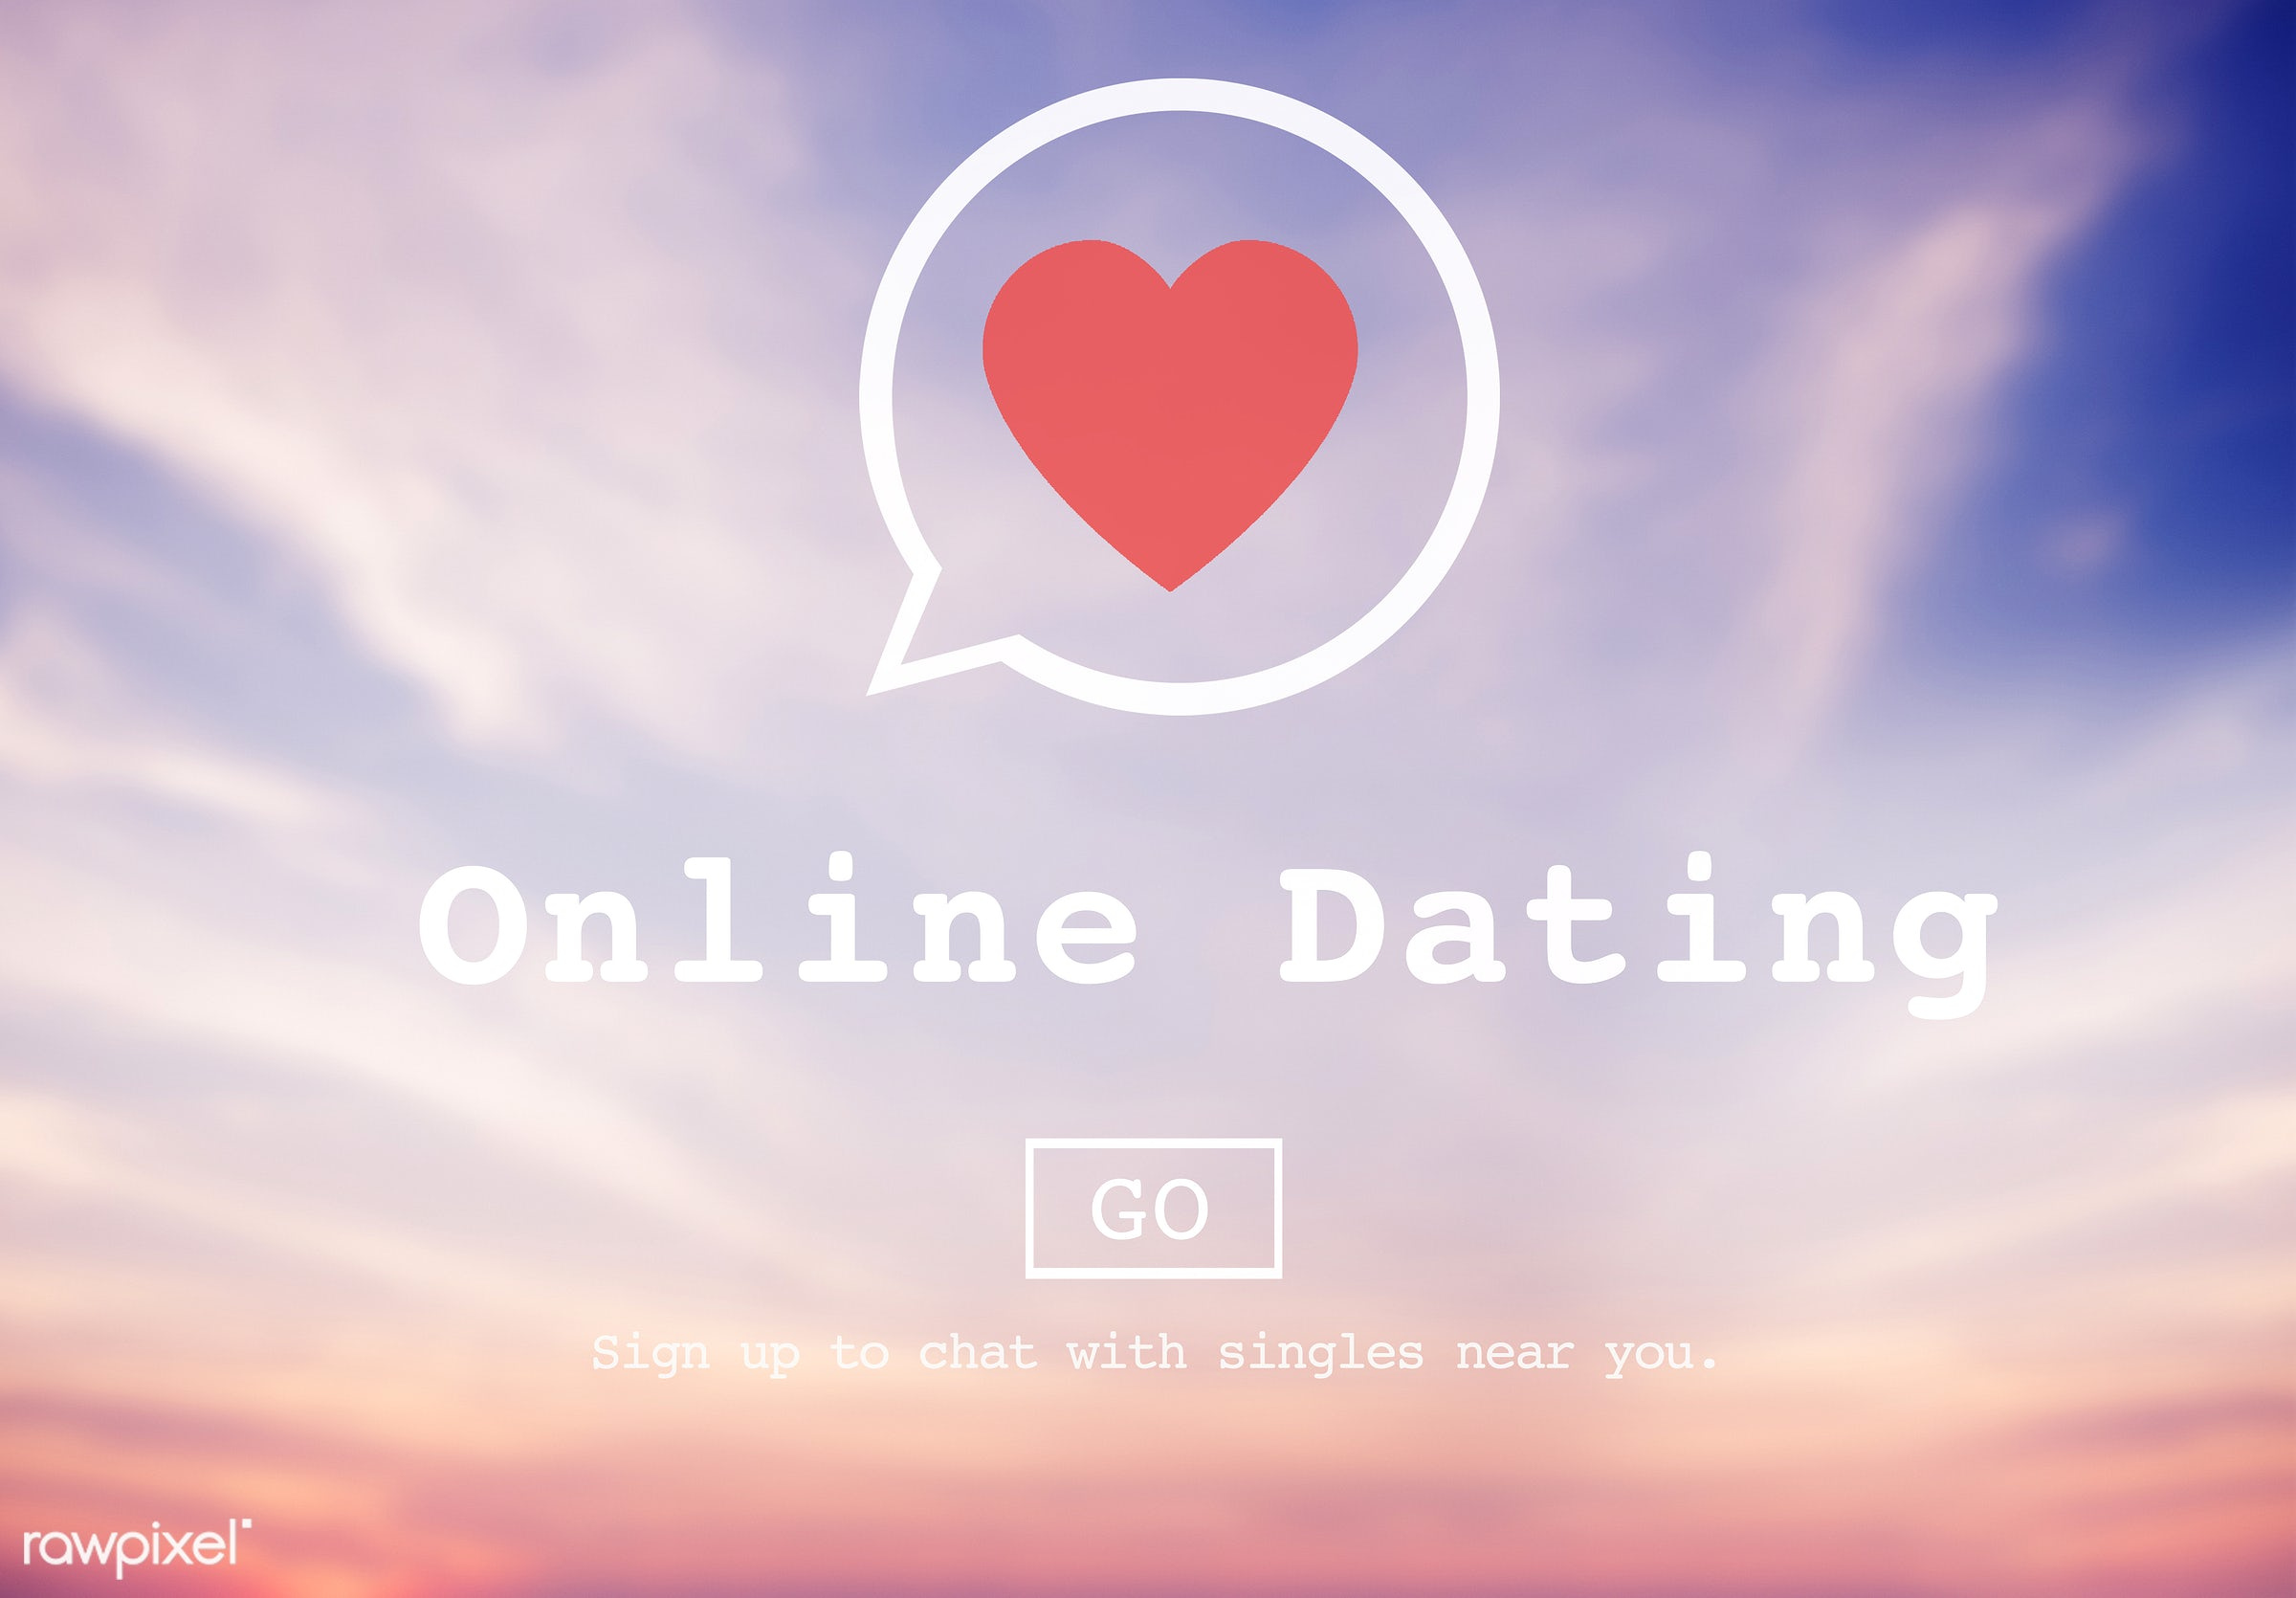 background, beautiful, blue, bright, colourful, communication, connect, court, dating, empty, go steady, heart, internet,...